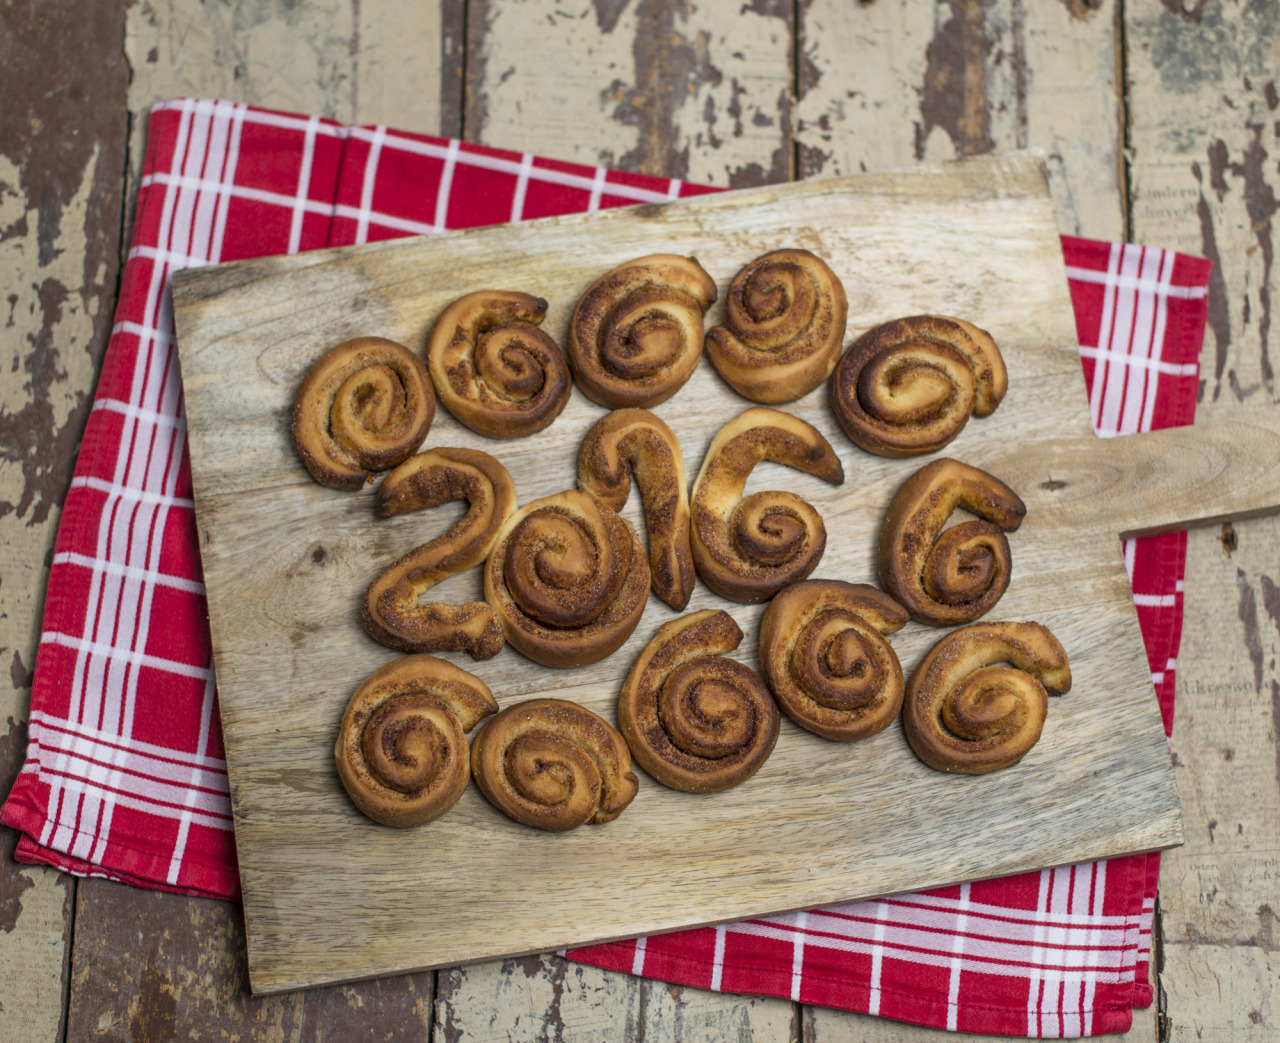 starting the new year with fresh baked cinnamon rolls - happy new year to everyone!